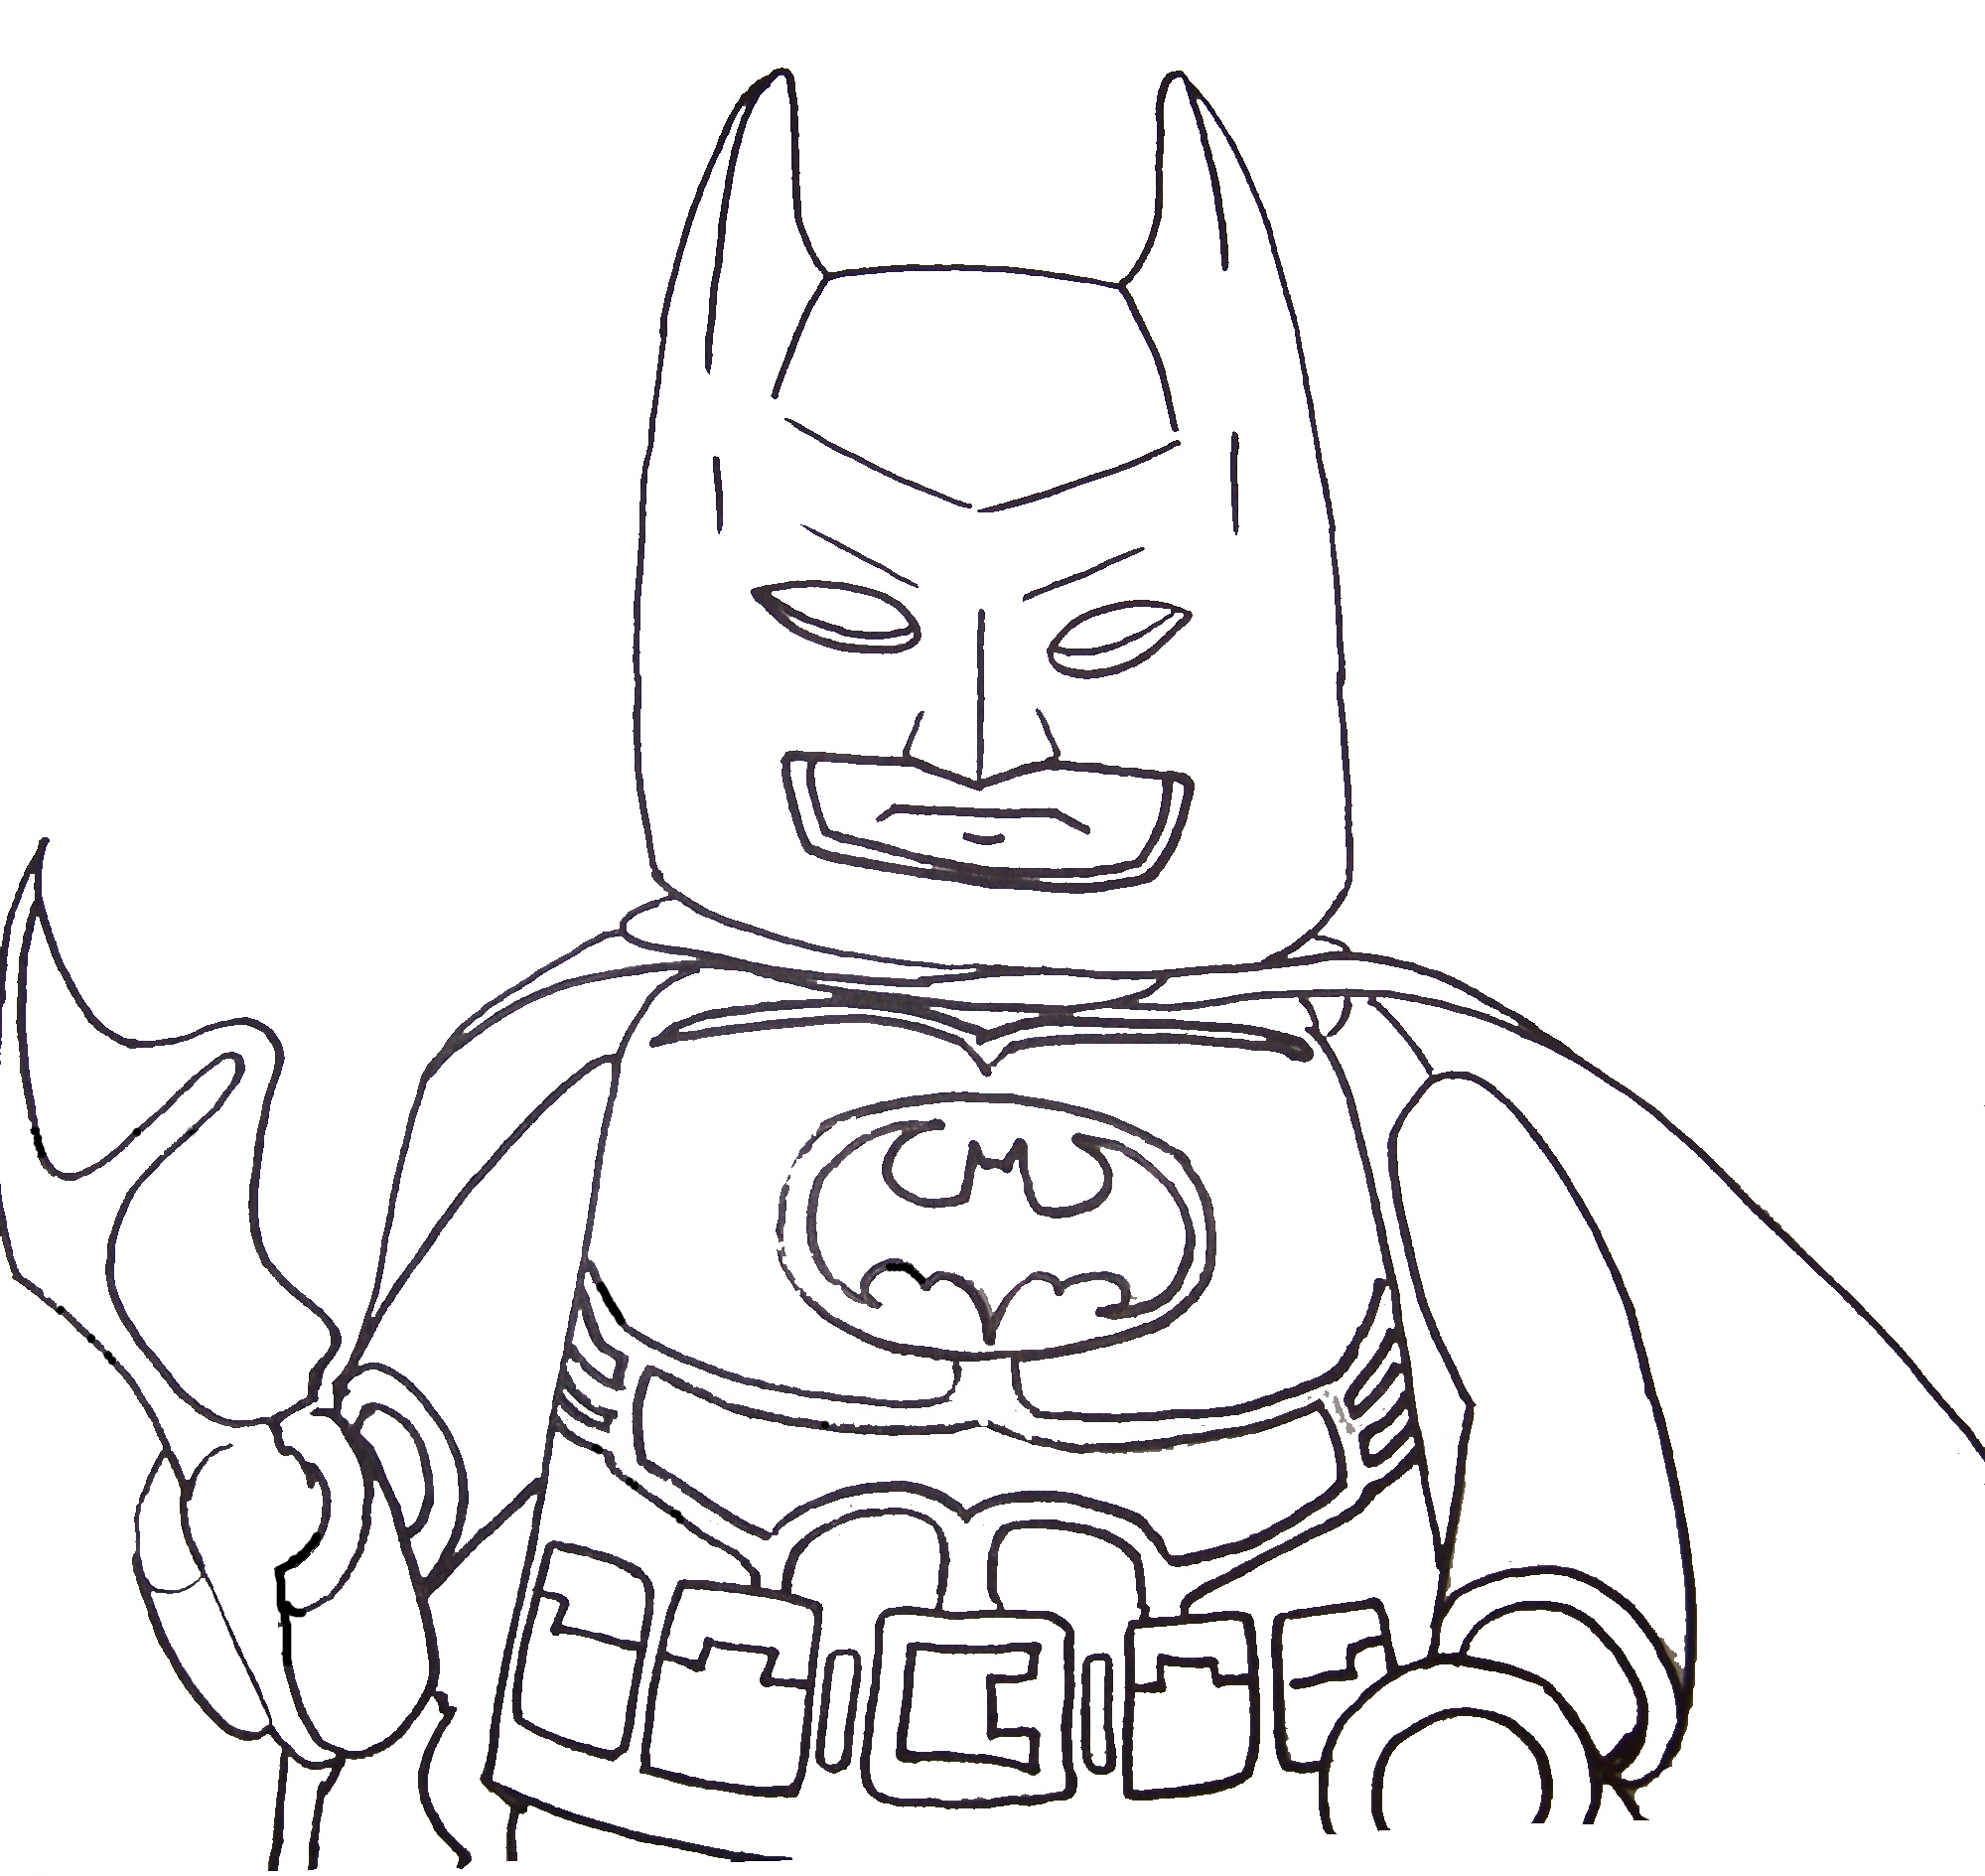 1999x1889 Coloring Pages Free Coloring Pages For Boys To Print